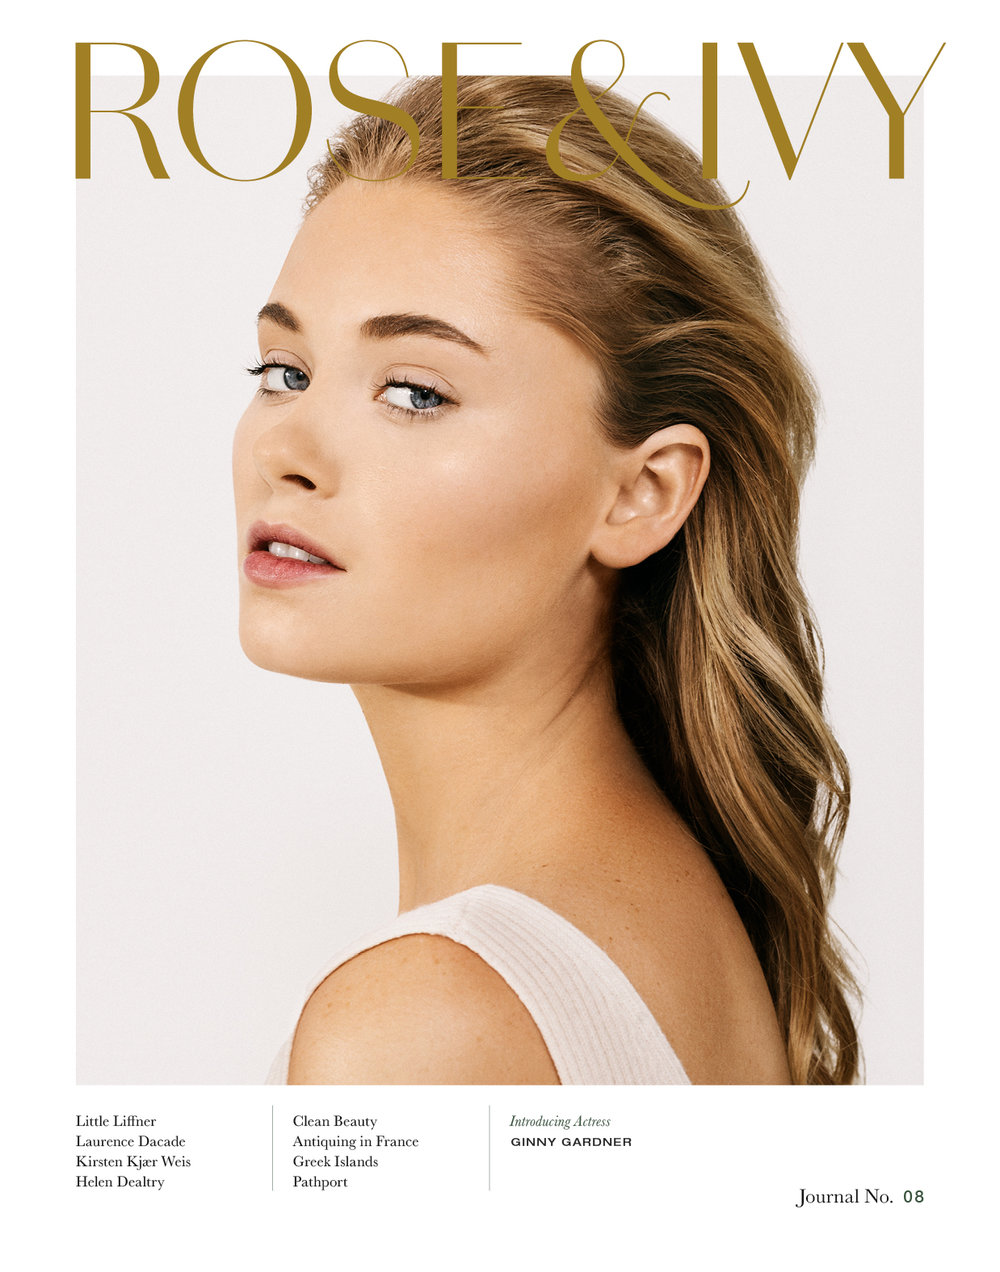 Discover ROSE & IVY Journal Issue No.08 -